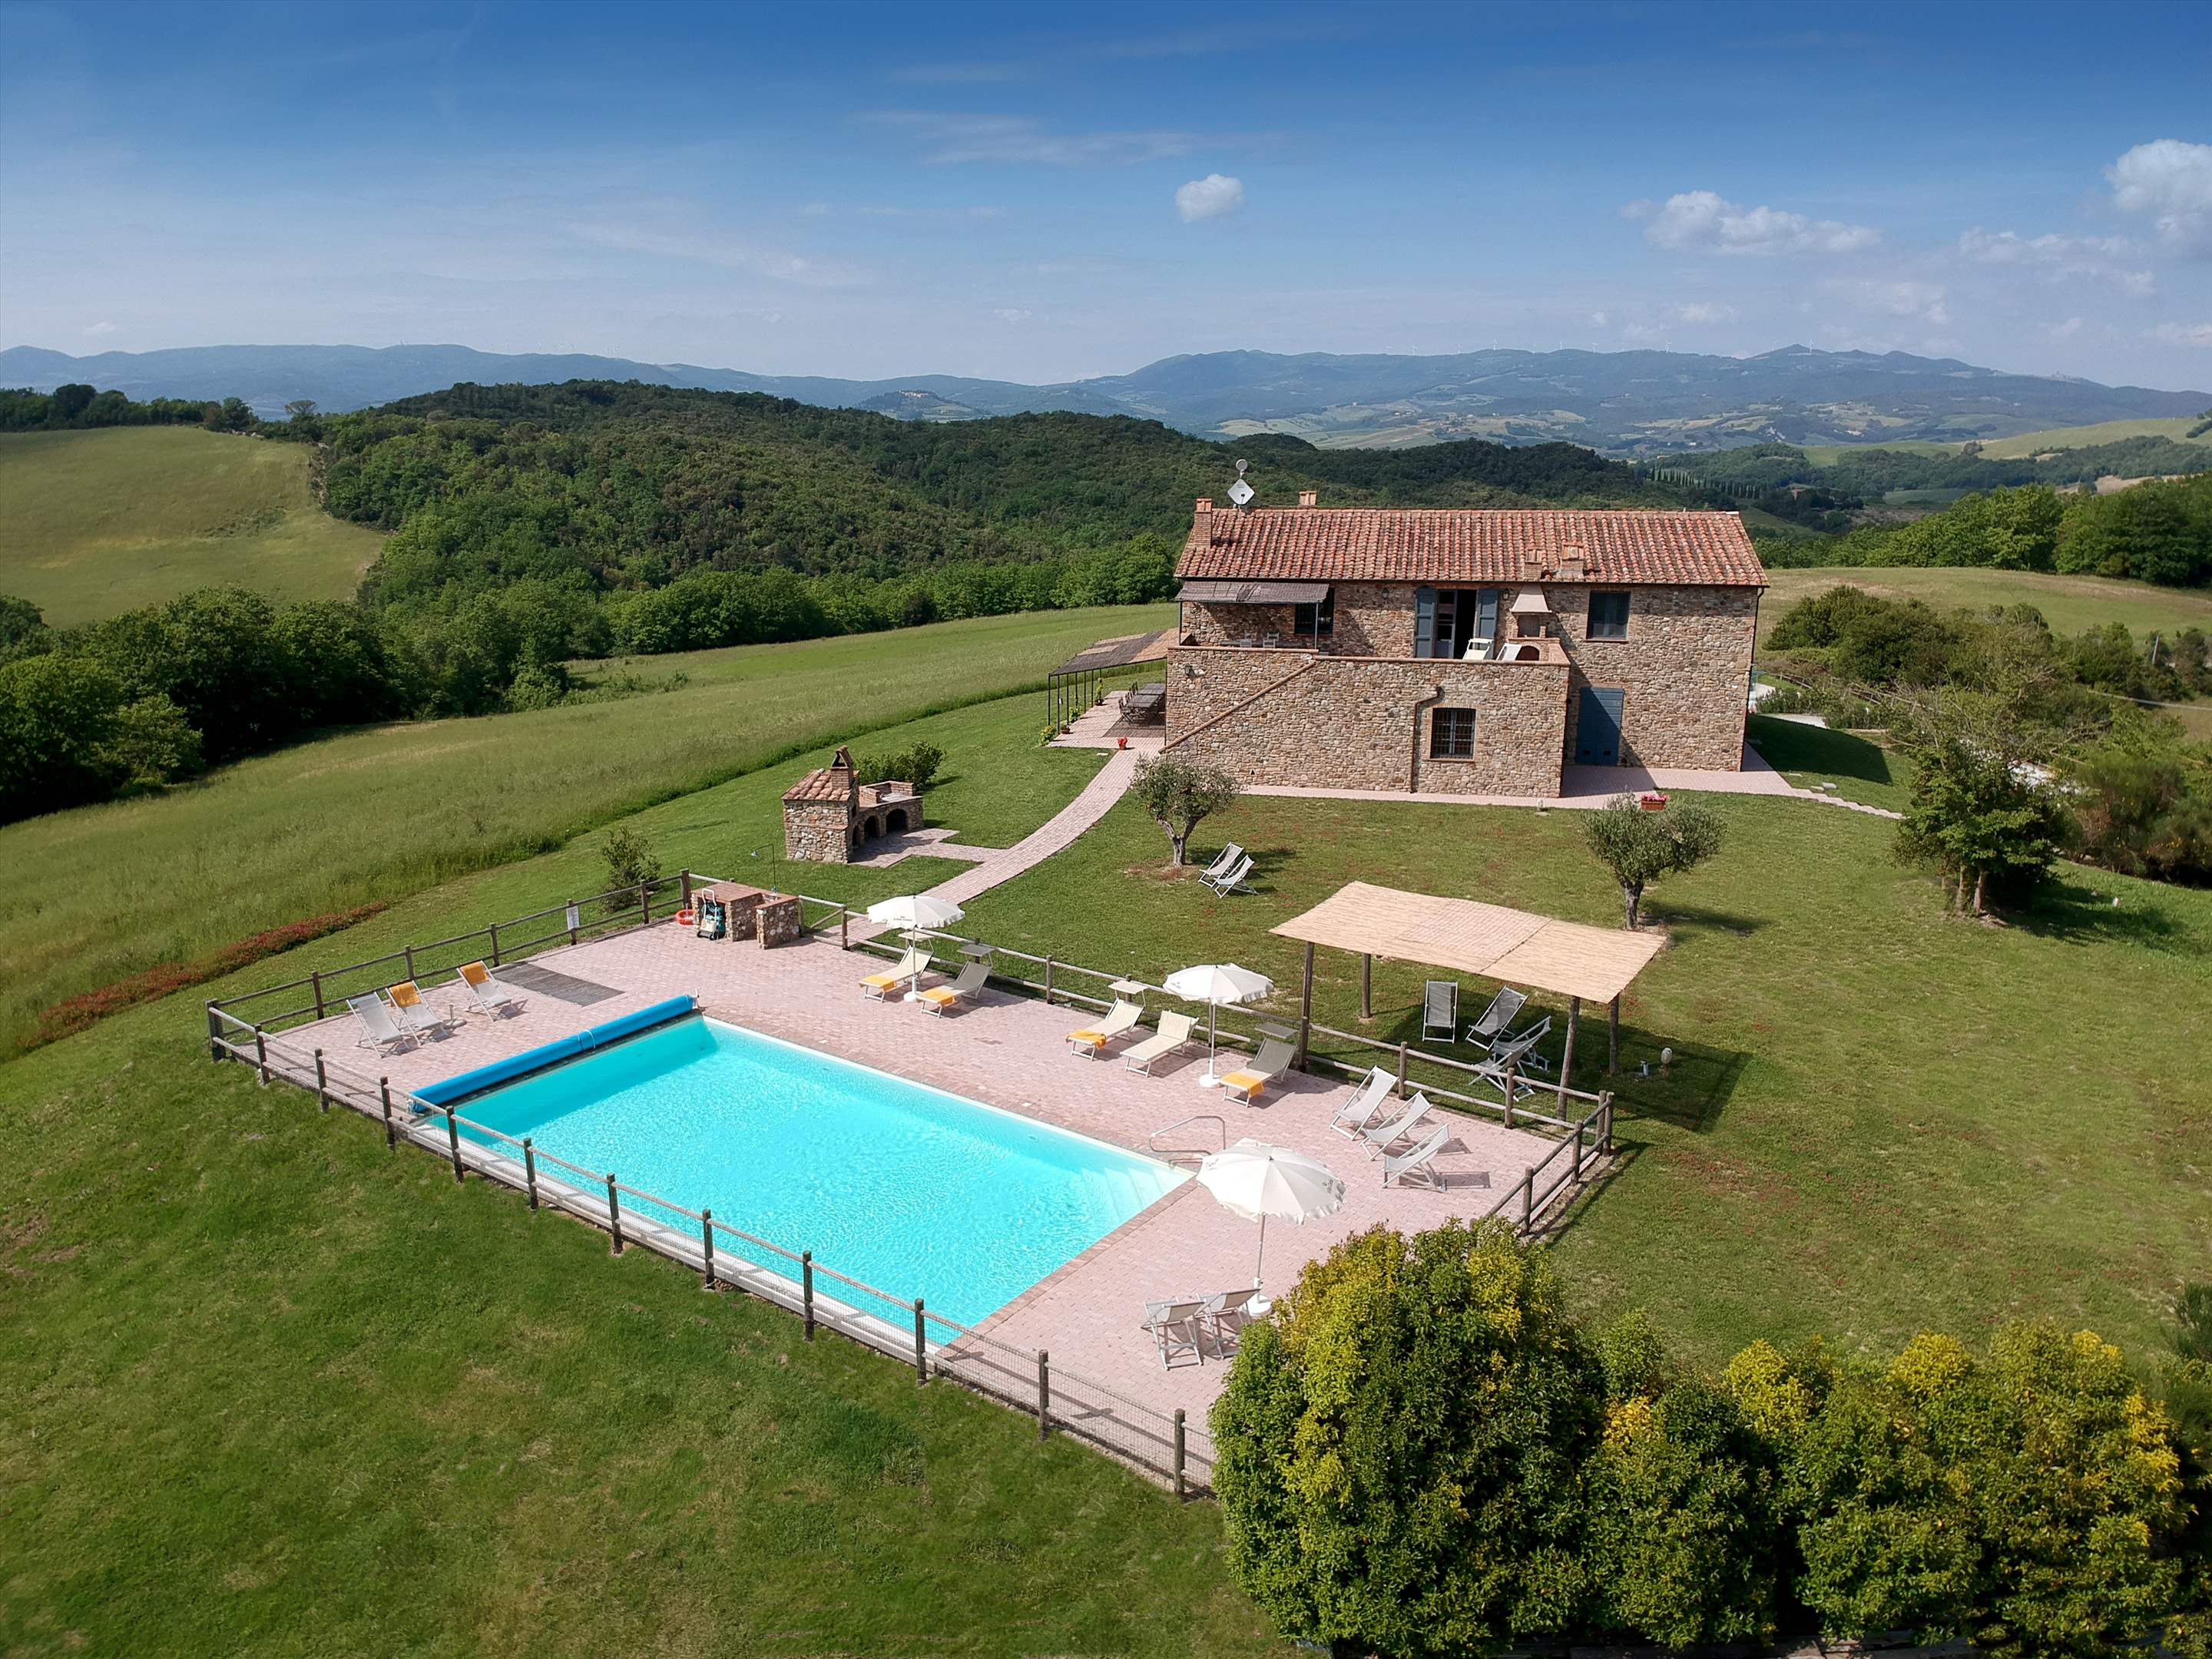 Podere Di Collina, Villa & Apts, 8 bedroom villa in Tuscany Coast, Tuscany Photo #1